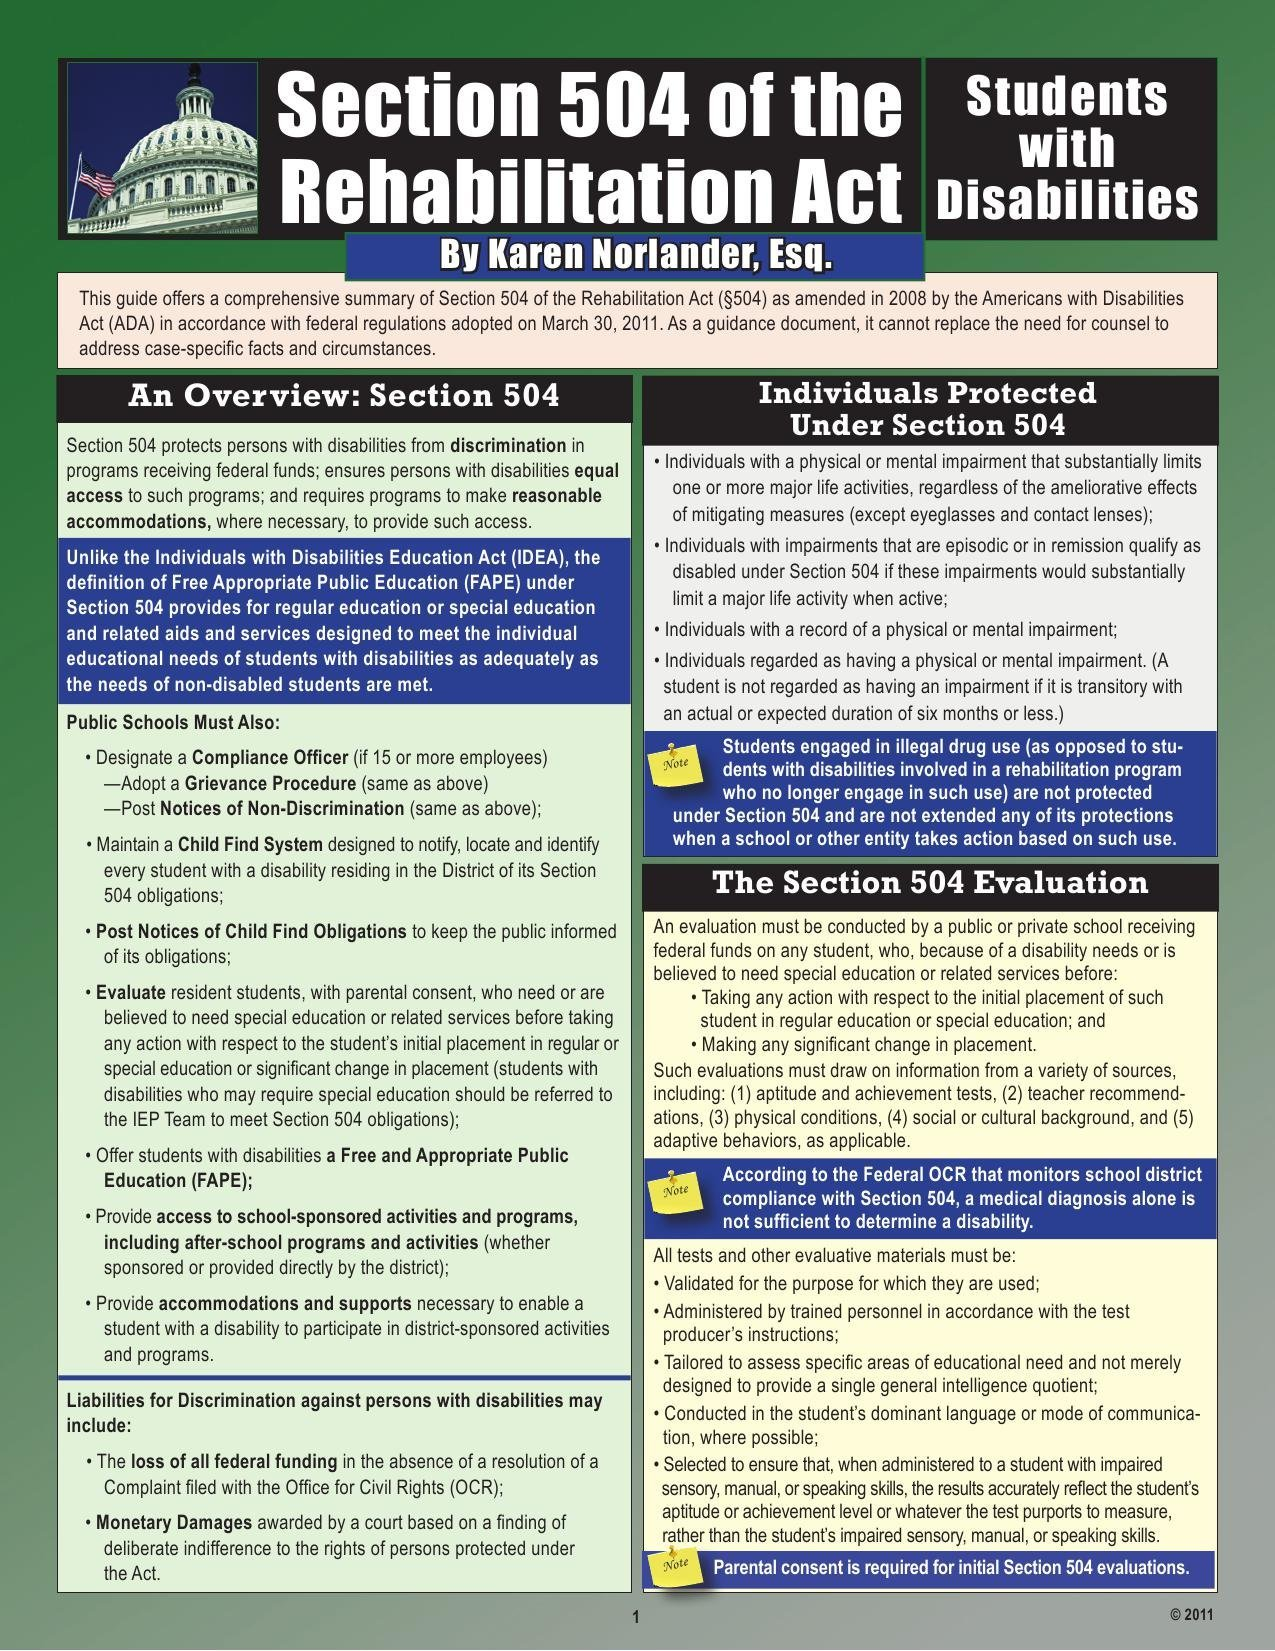 Section 504 of the Rehabilitation Act: Students with Disabilities, 2nd Edition